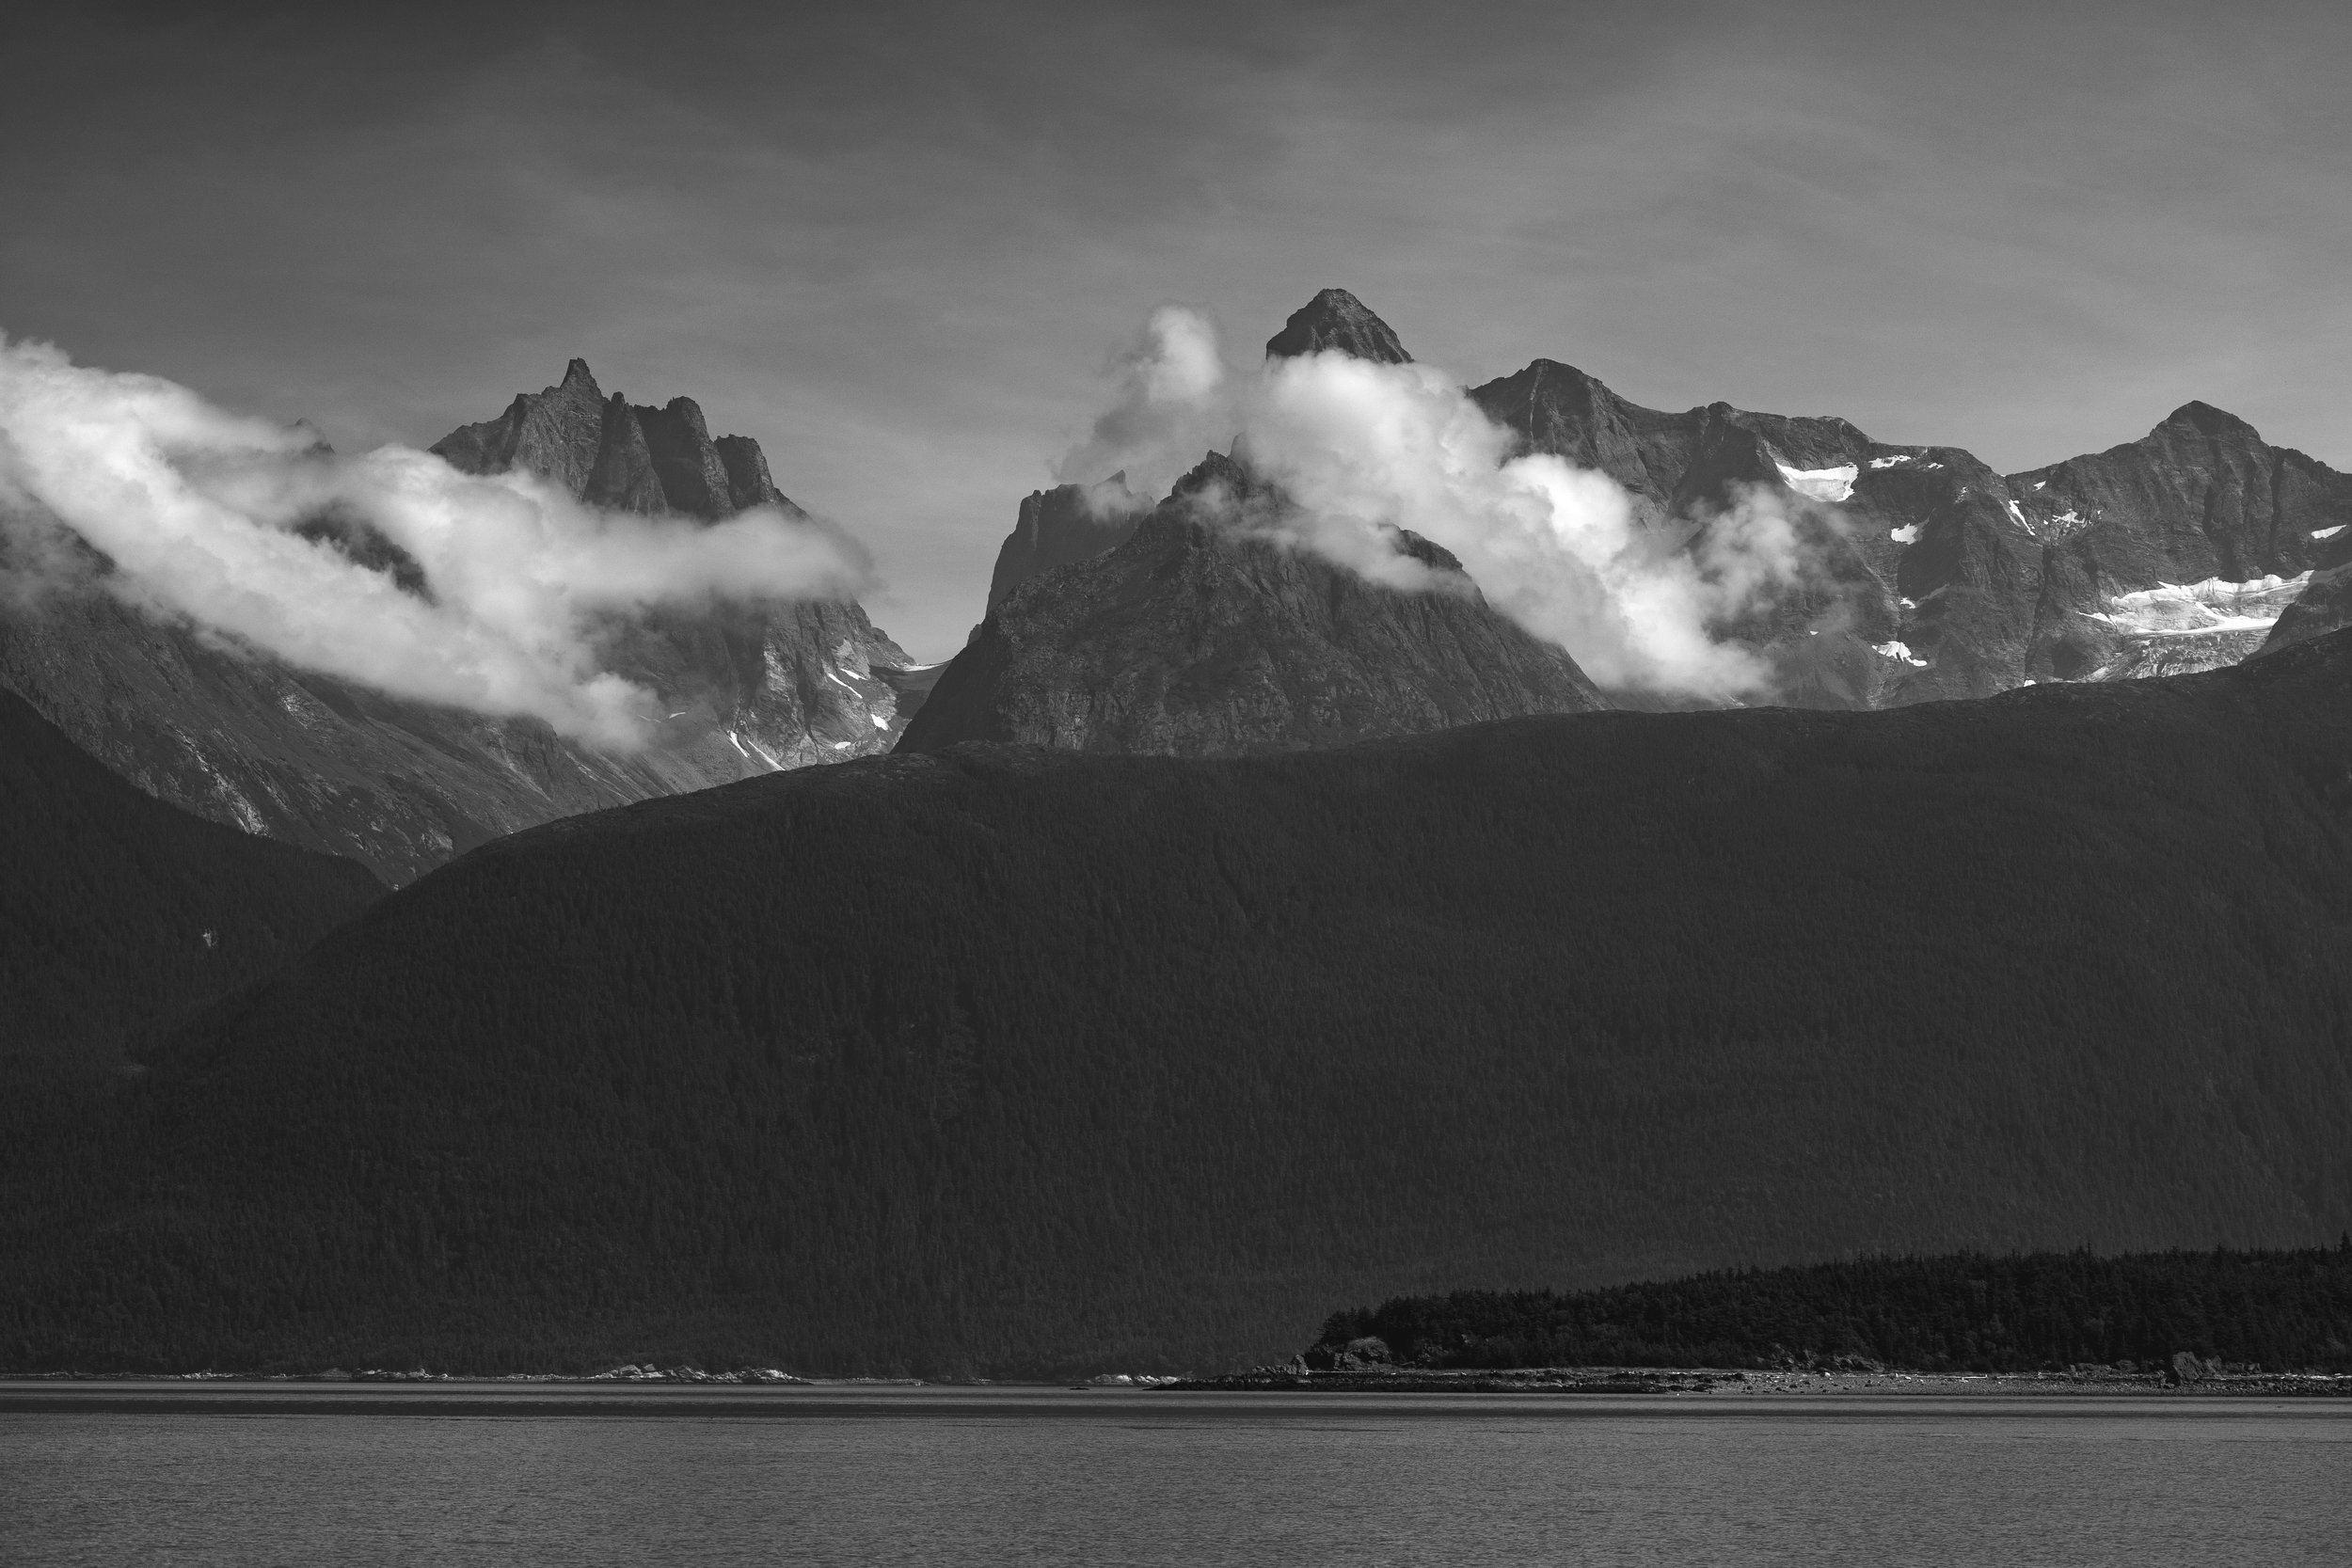 Chilkoot Inlet and the Coast Range, Alaska, August 2019